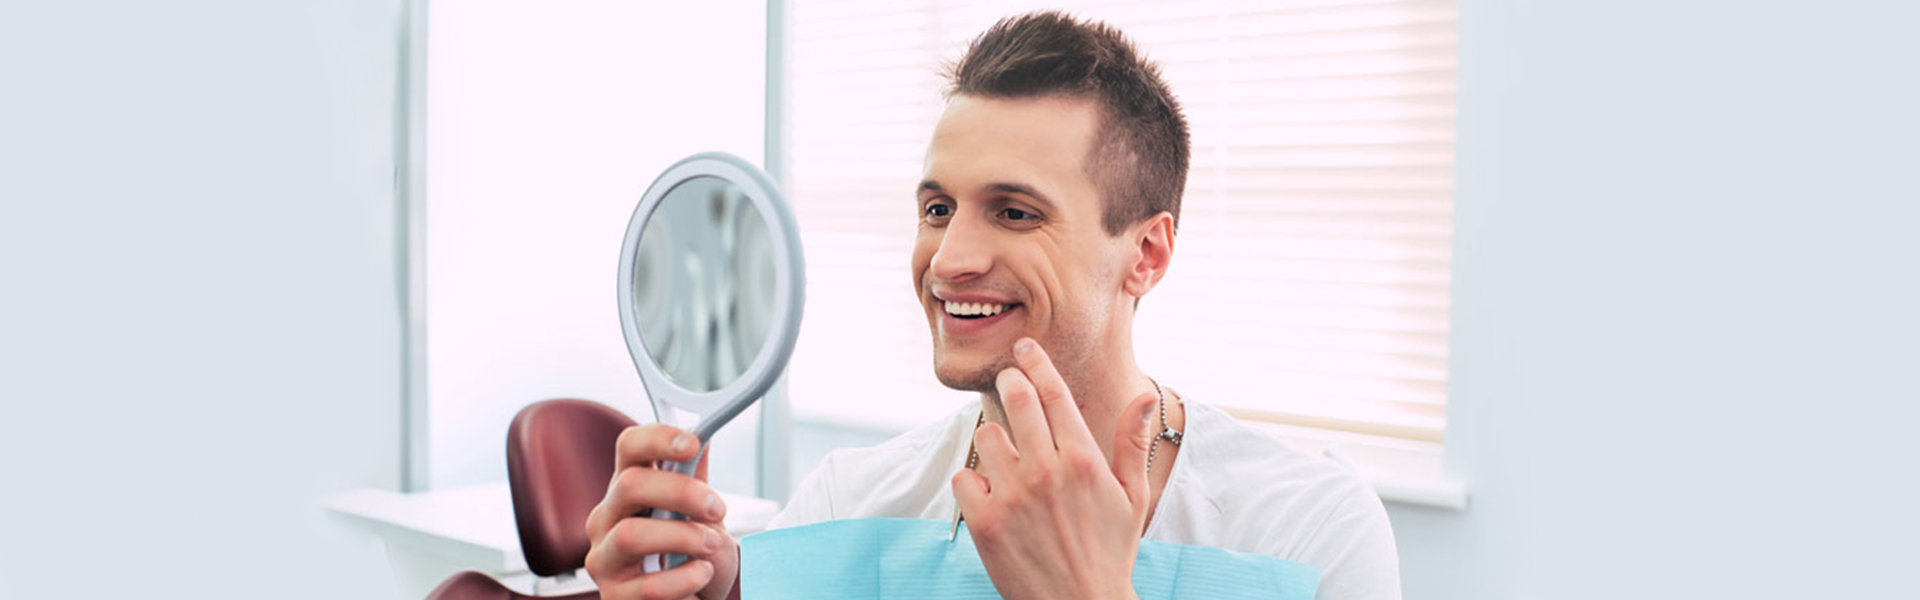 Gum Disease Best Treated by Professionals Specializing in Periodontics